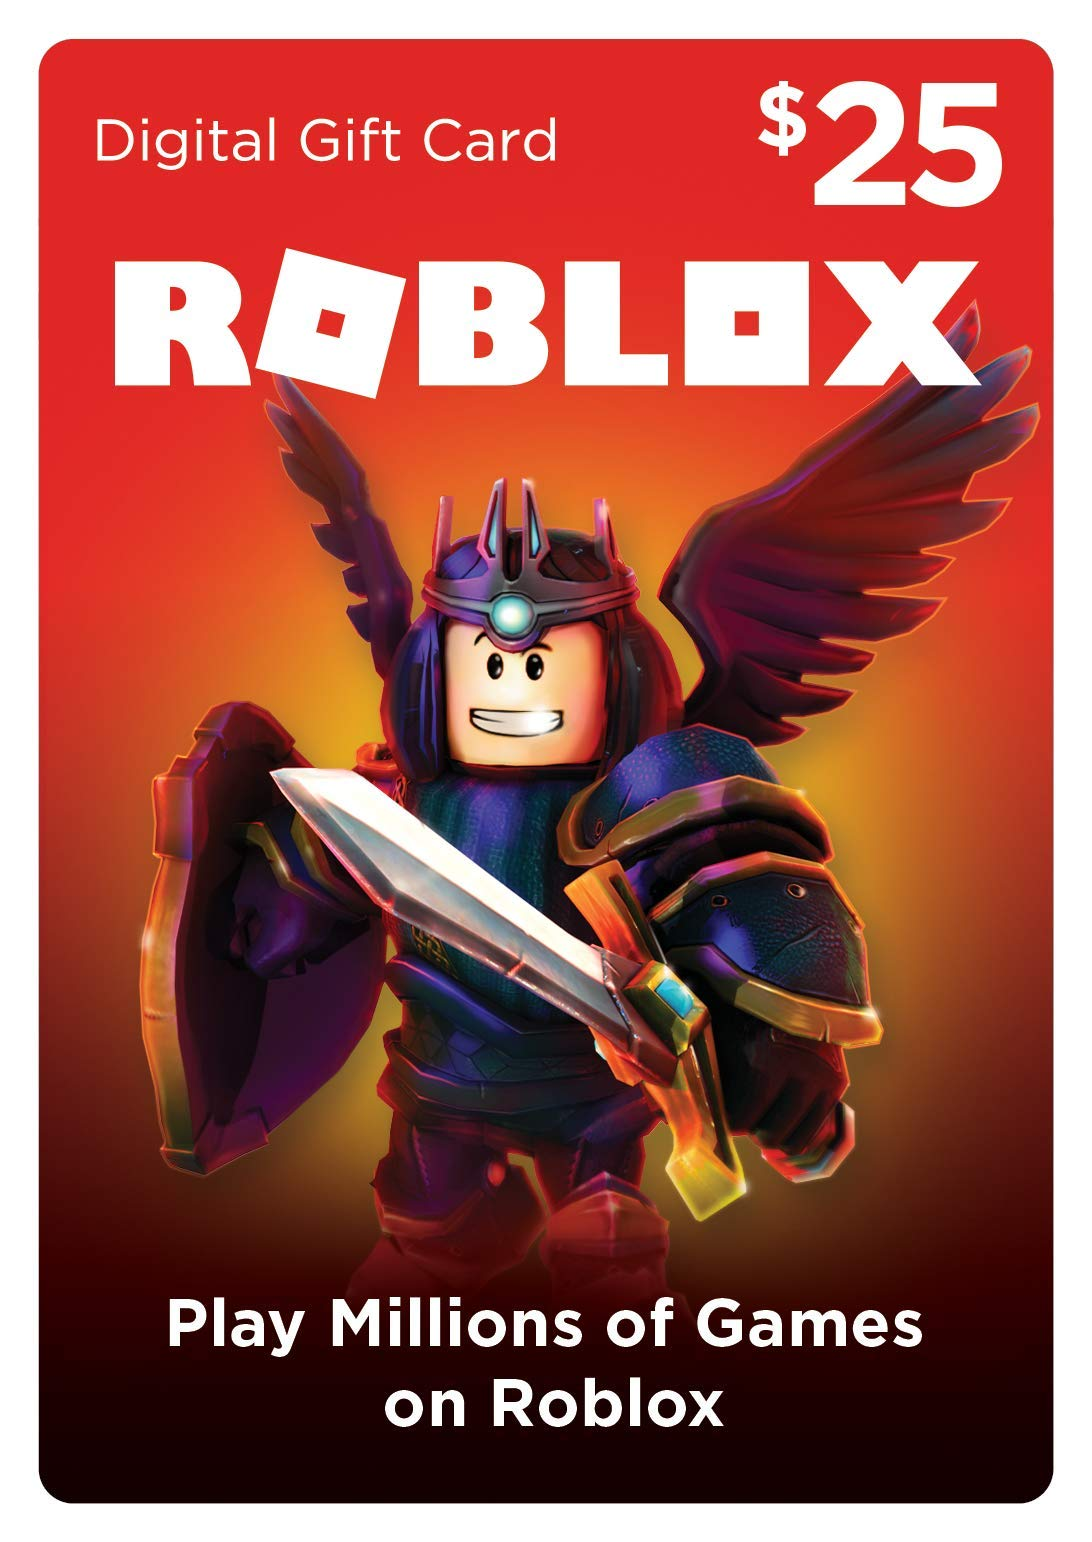 2,000 Robux for Roblox [Online Game Code]